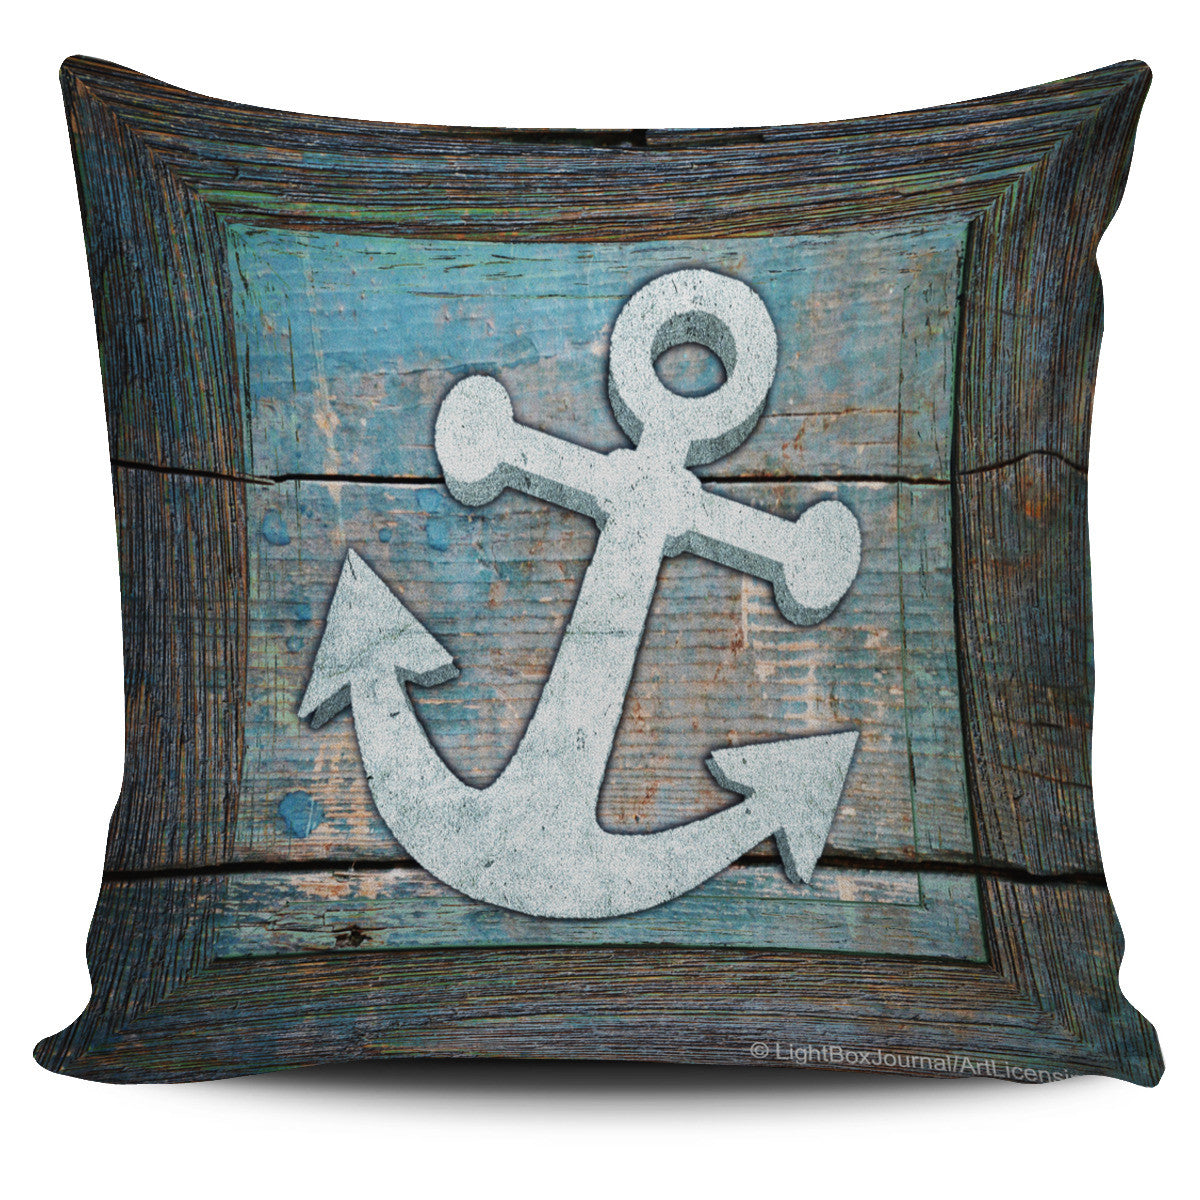 Nautical Wood Frame - Pillow Covers